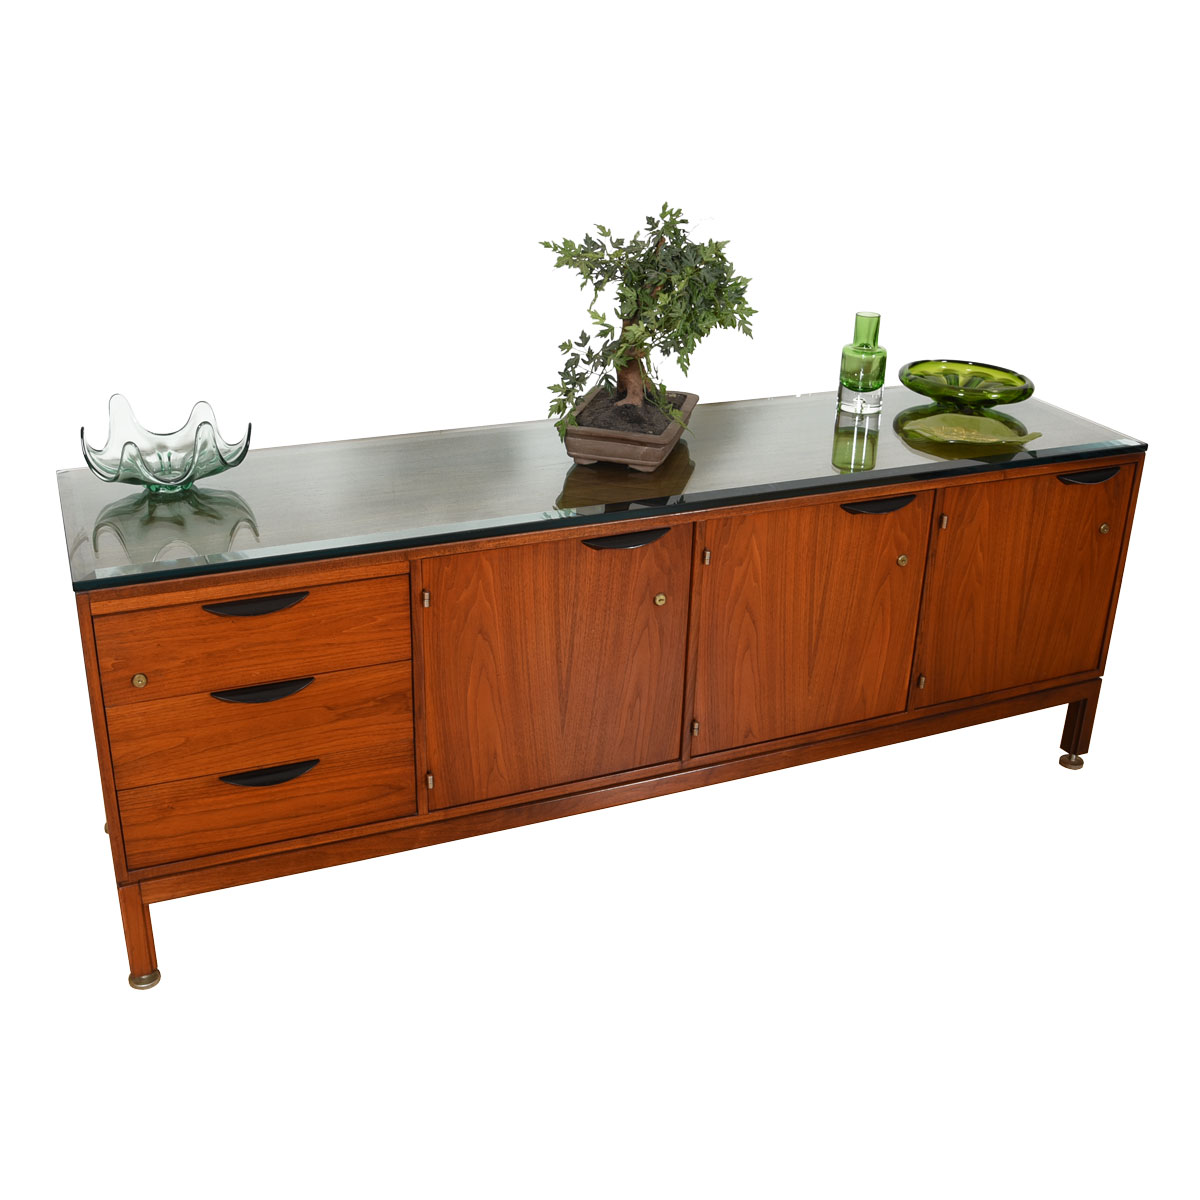 Jens Risom Office Credenza